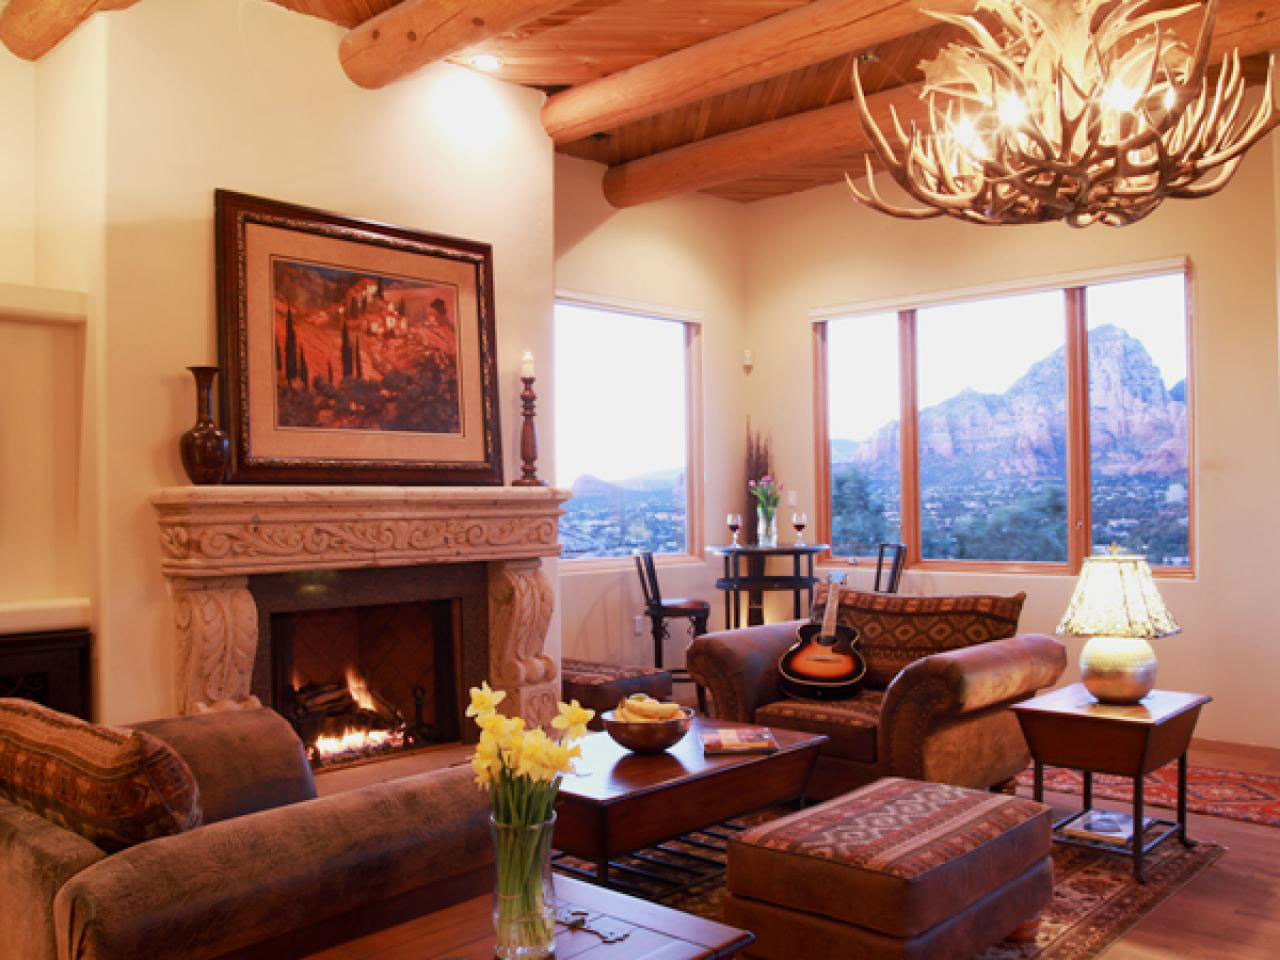 Southwestern Interior Design Style And Decorating Ideas Home Decor Impressive Photos Style